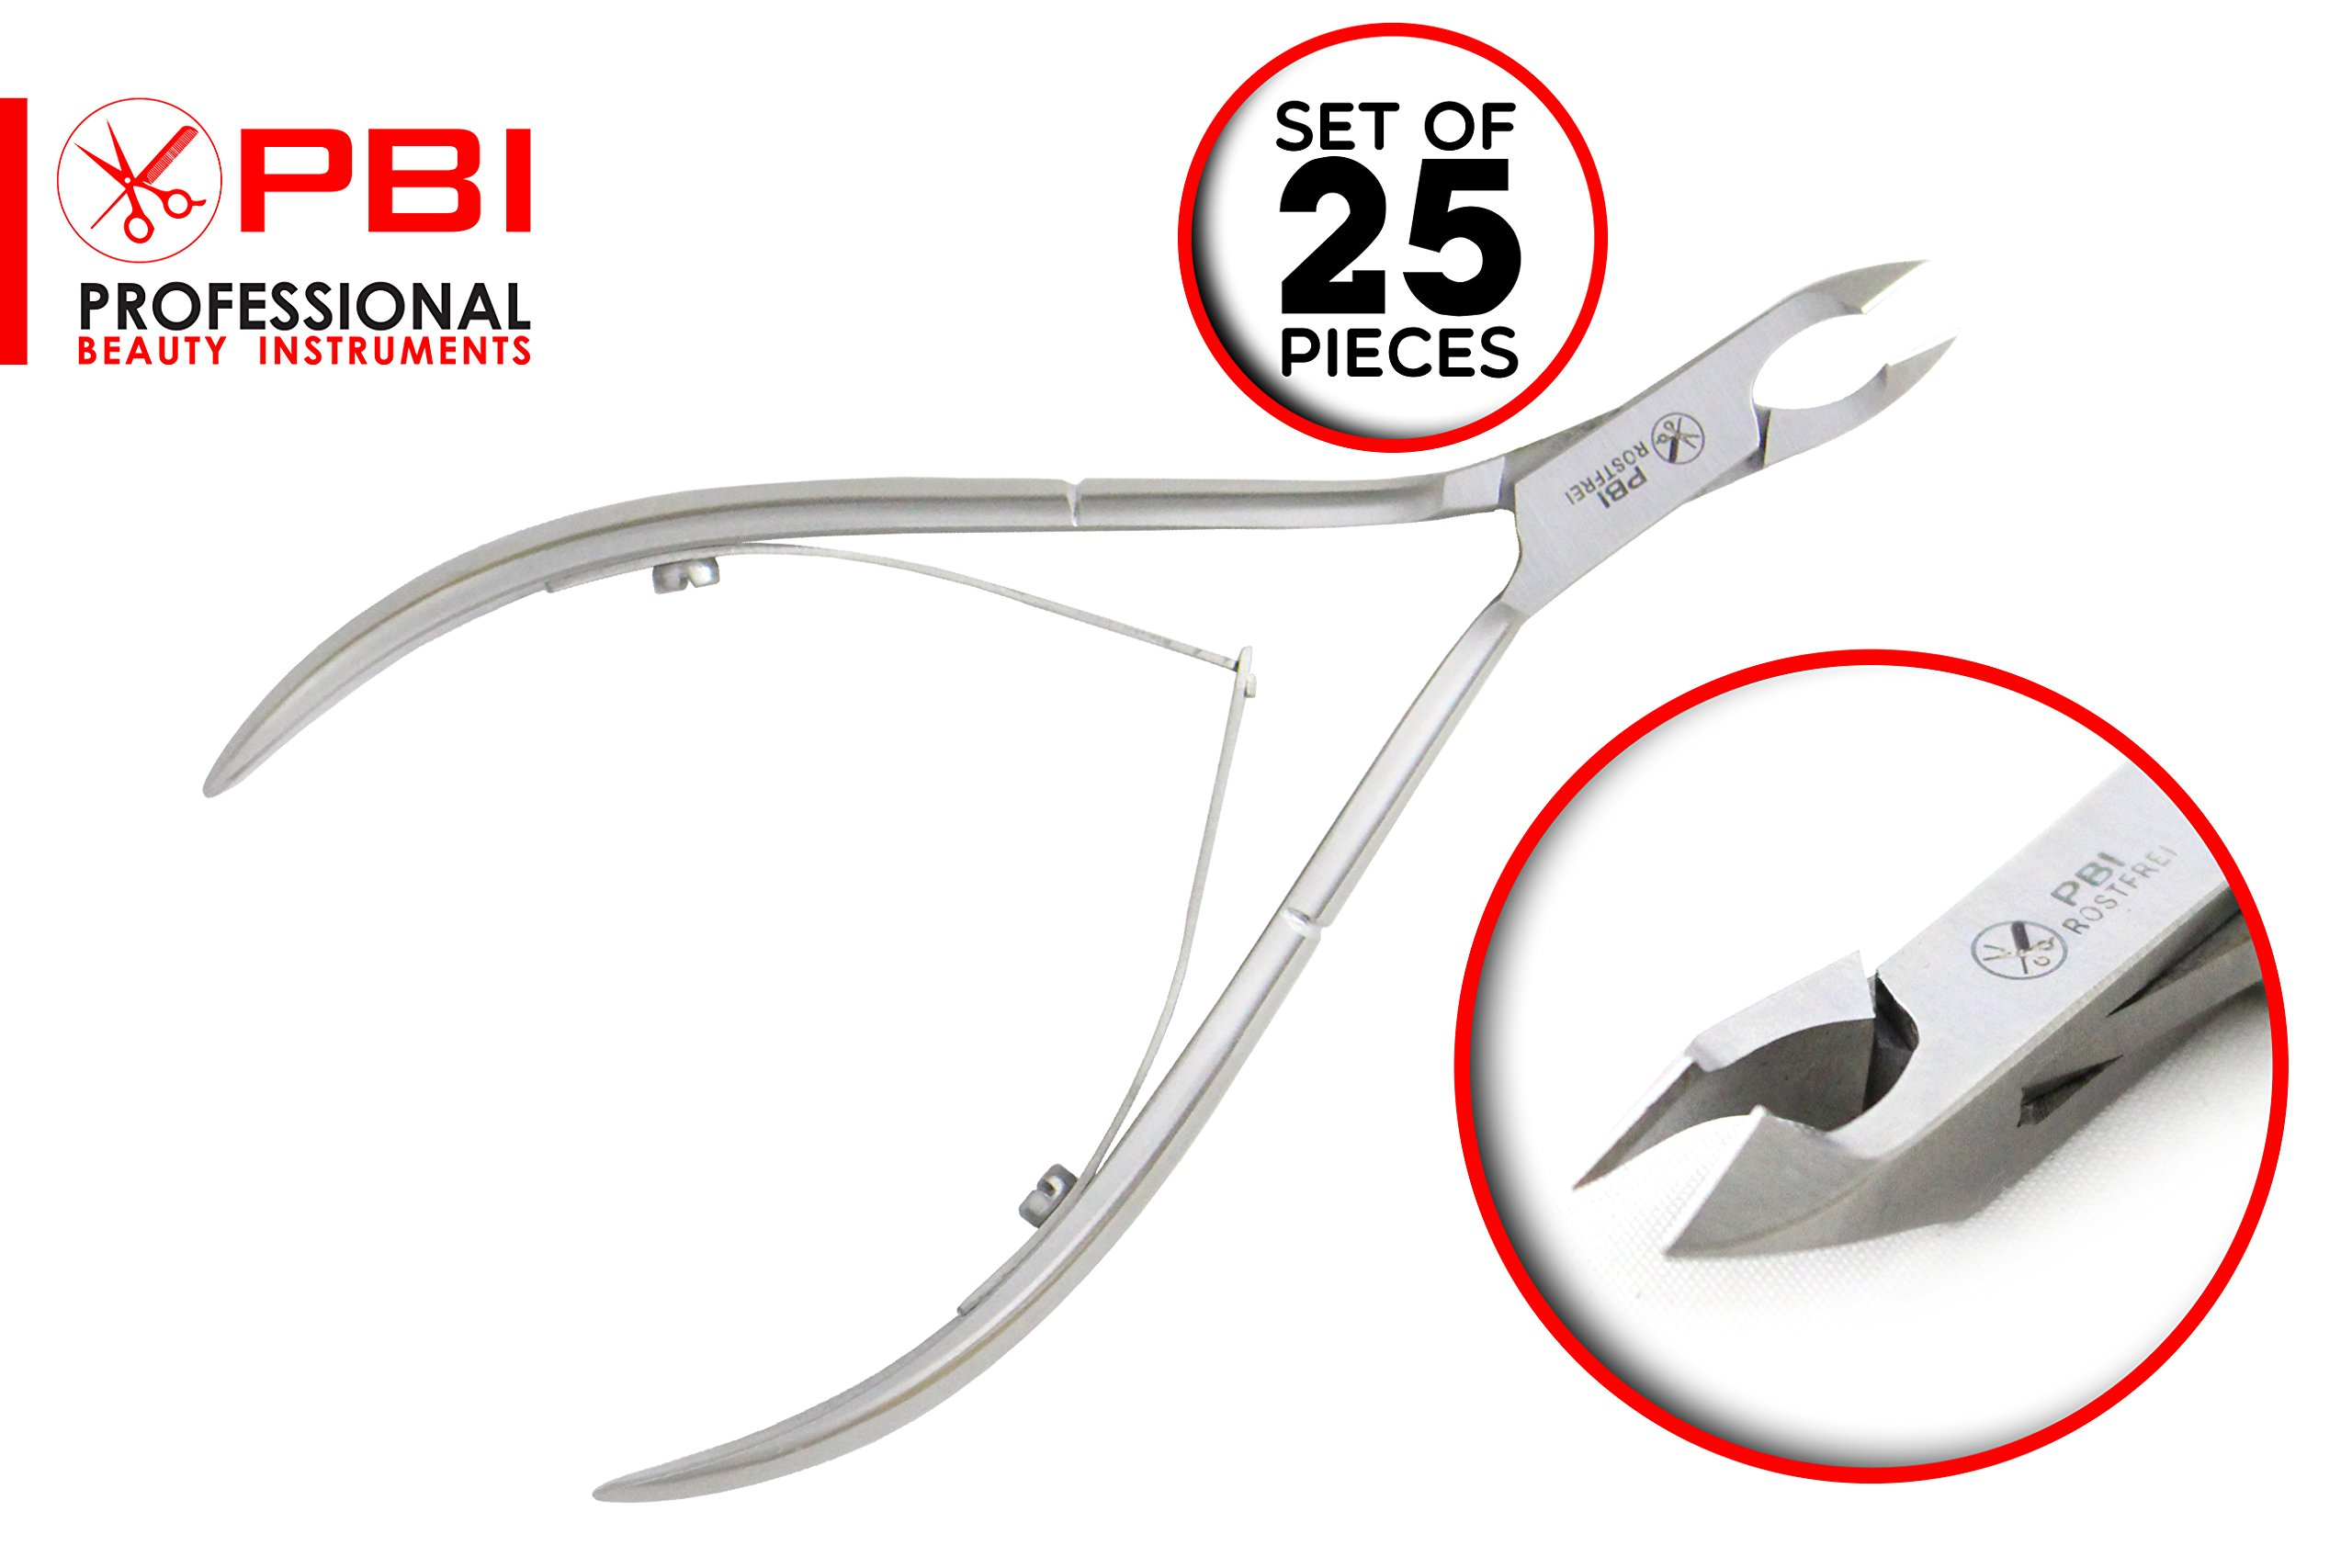 Cuticle nipper - cuticle cutter - cuticle plier - manicure pedicure cuticle nipper - double spring nipper - 11.8 cm - 25 pieces set - Stainless Steel from PBI by PBI professional beauty instruments (Image #1)